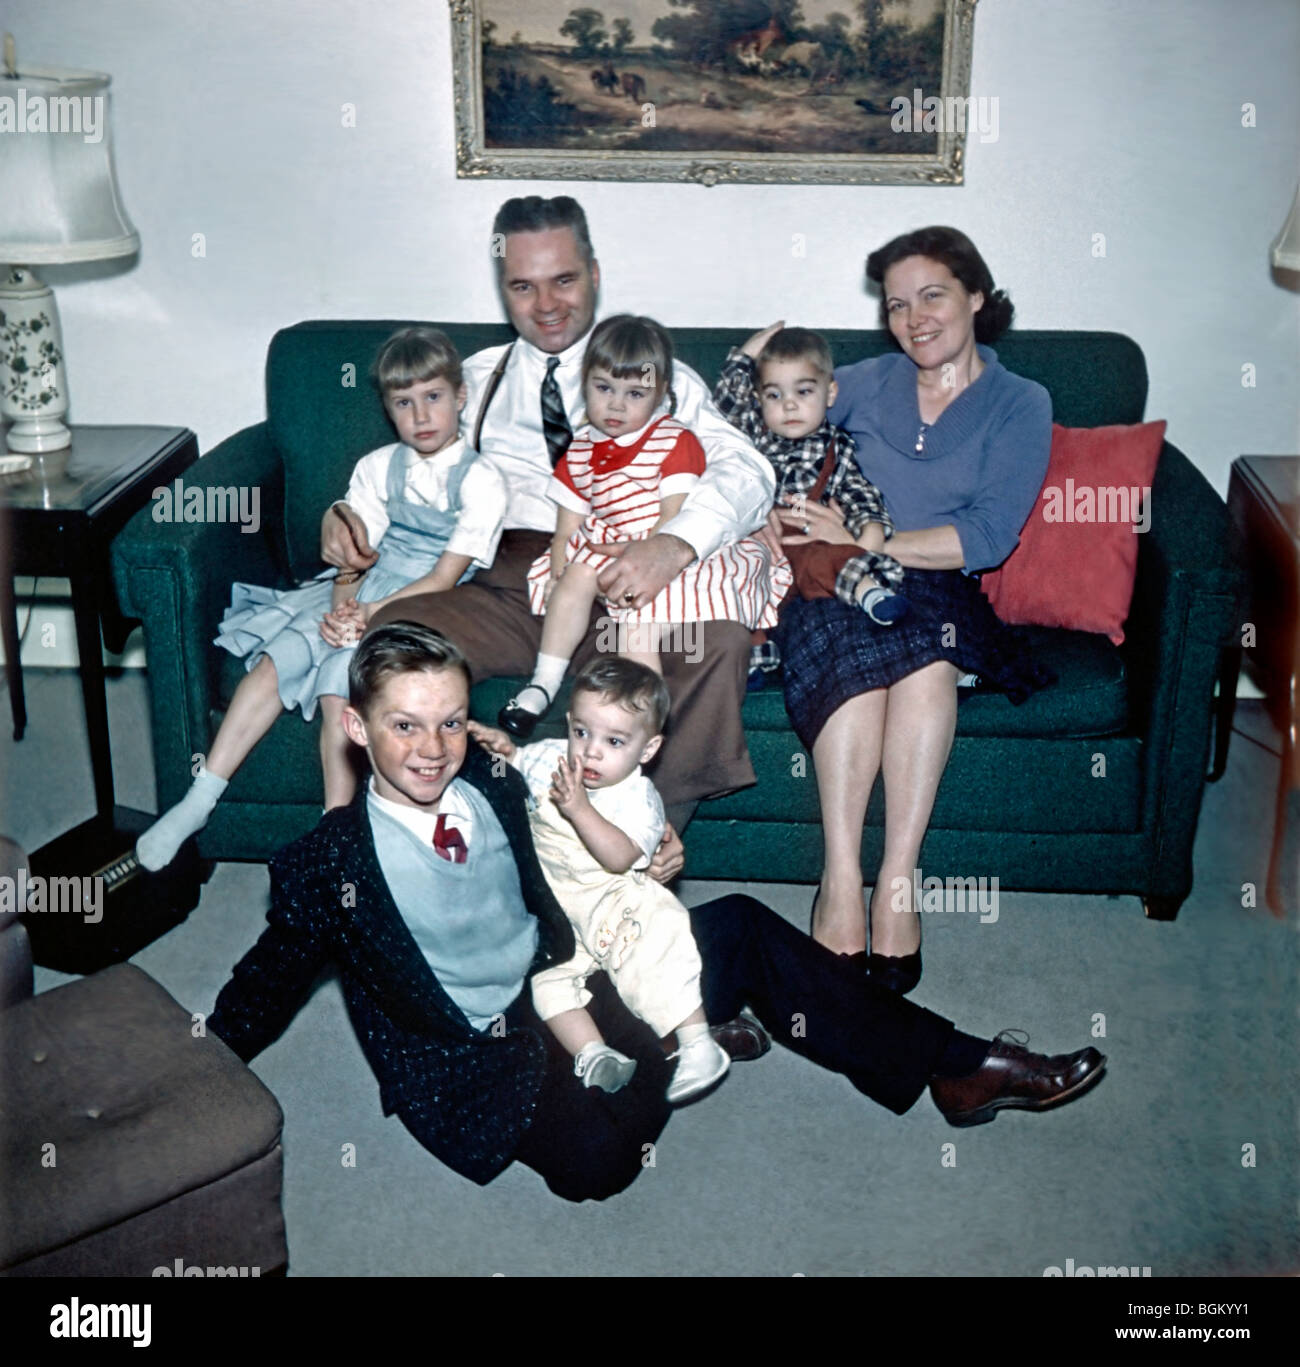 Family Archives Photo. Large Family Portrait 1950s 'Old Family Photos' Group sitting on Couch in Living - Stock Image